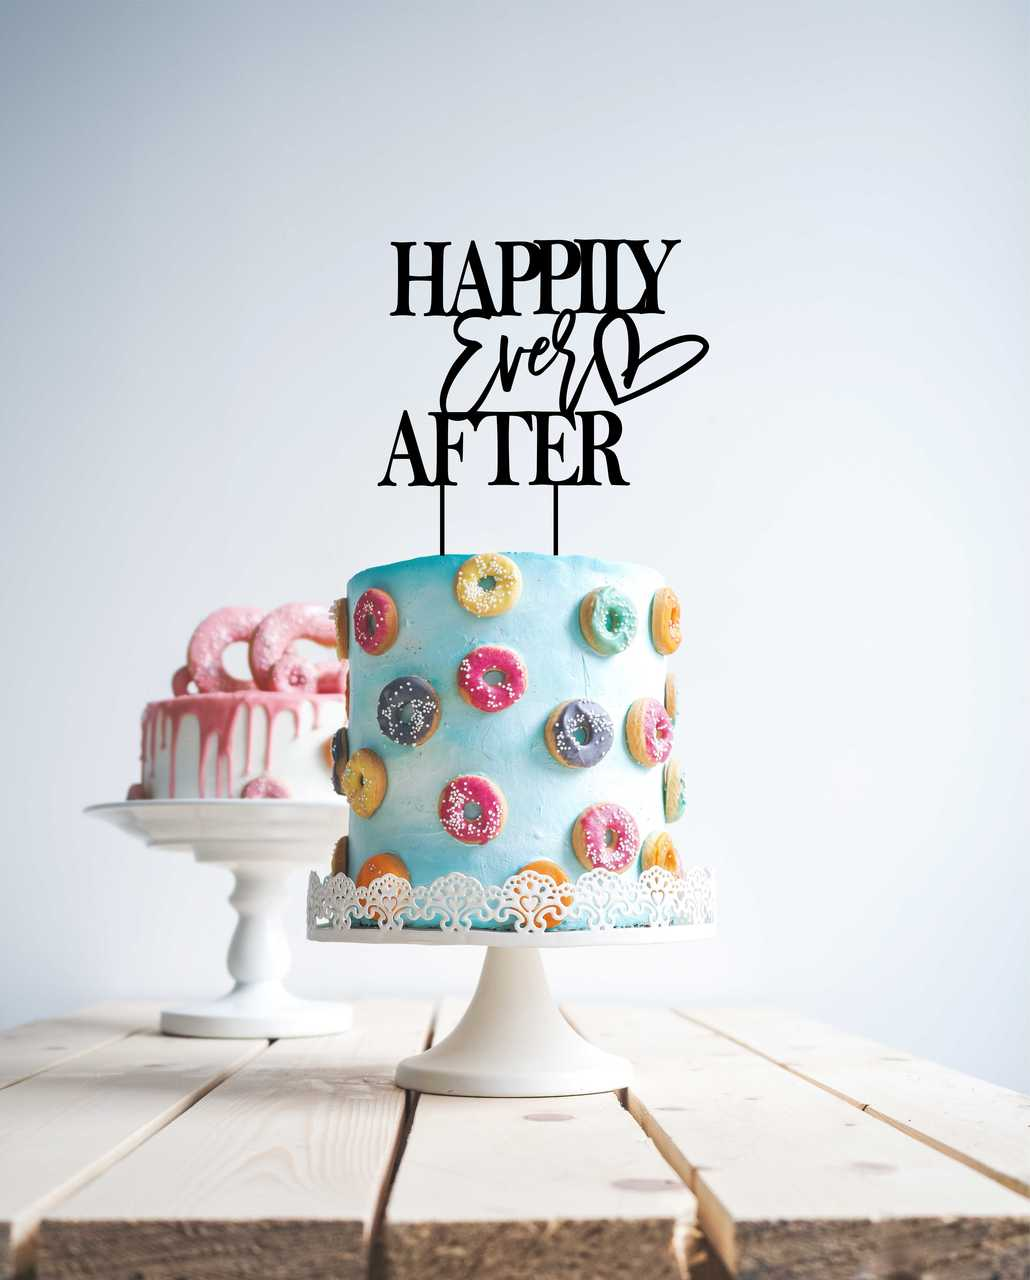 Happily ever after - Wood Cake Topper / wooden topper